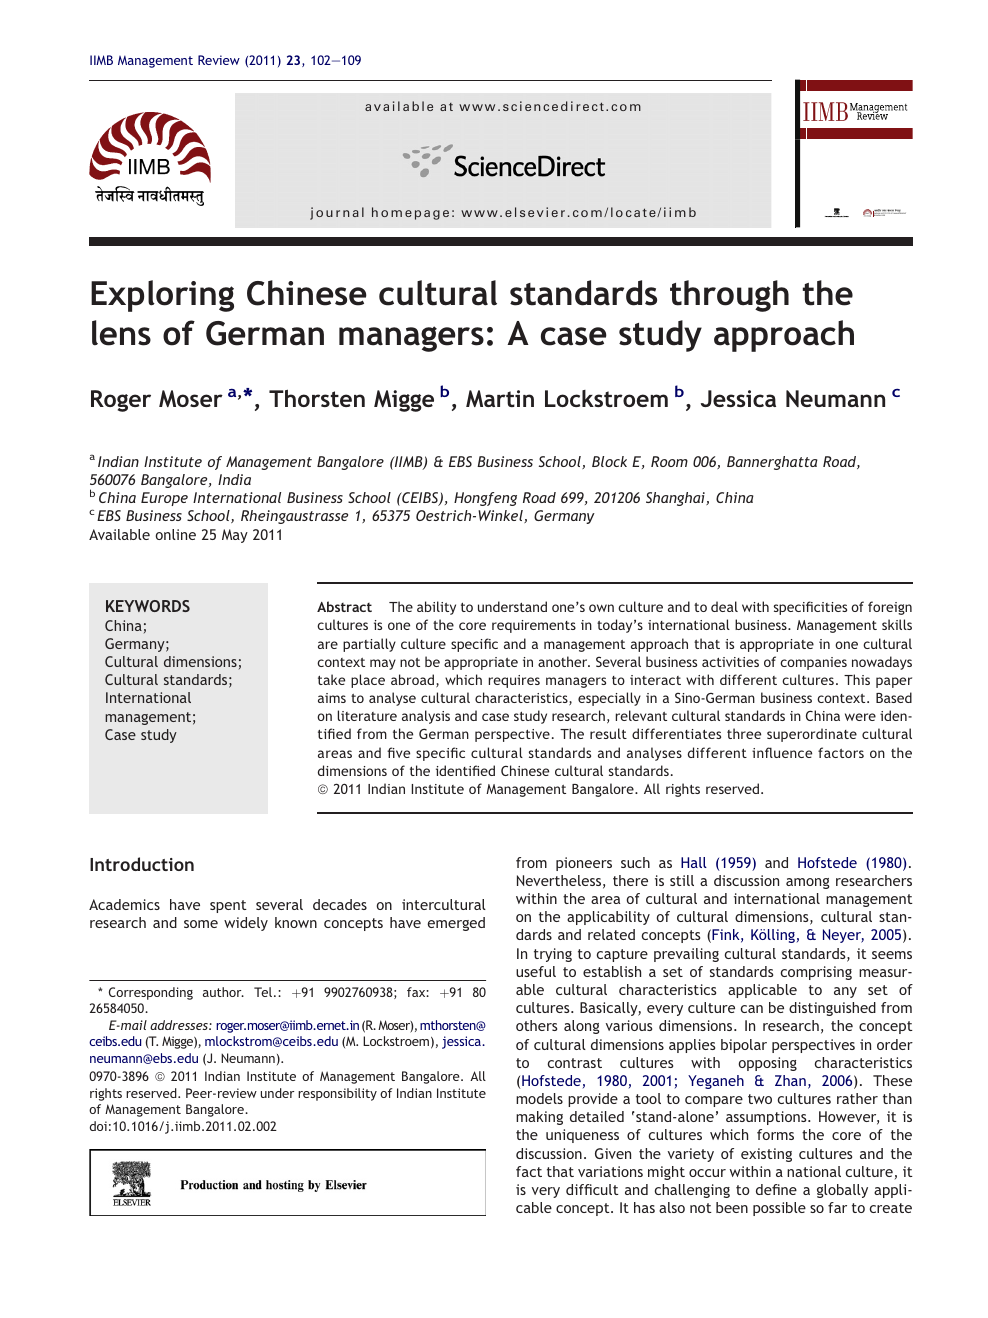 Exploring Chinese cultural standards through the lens of